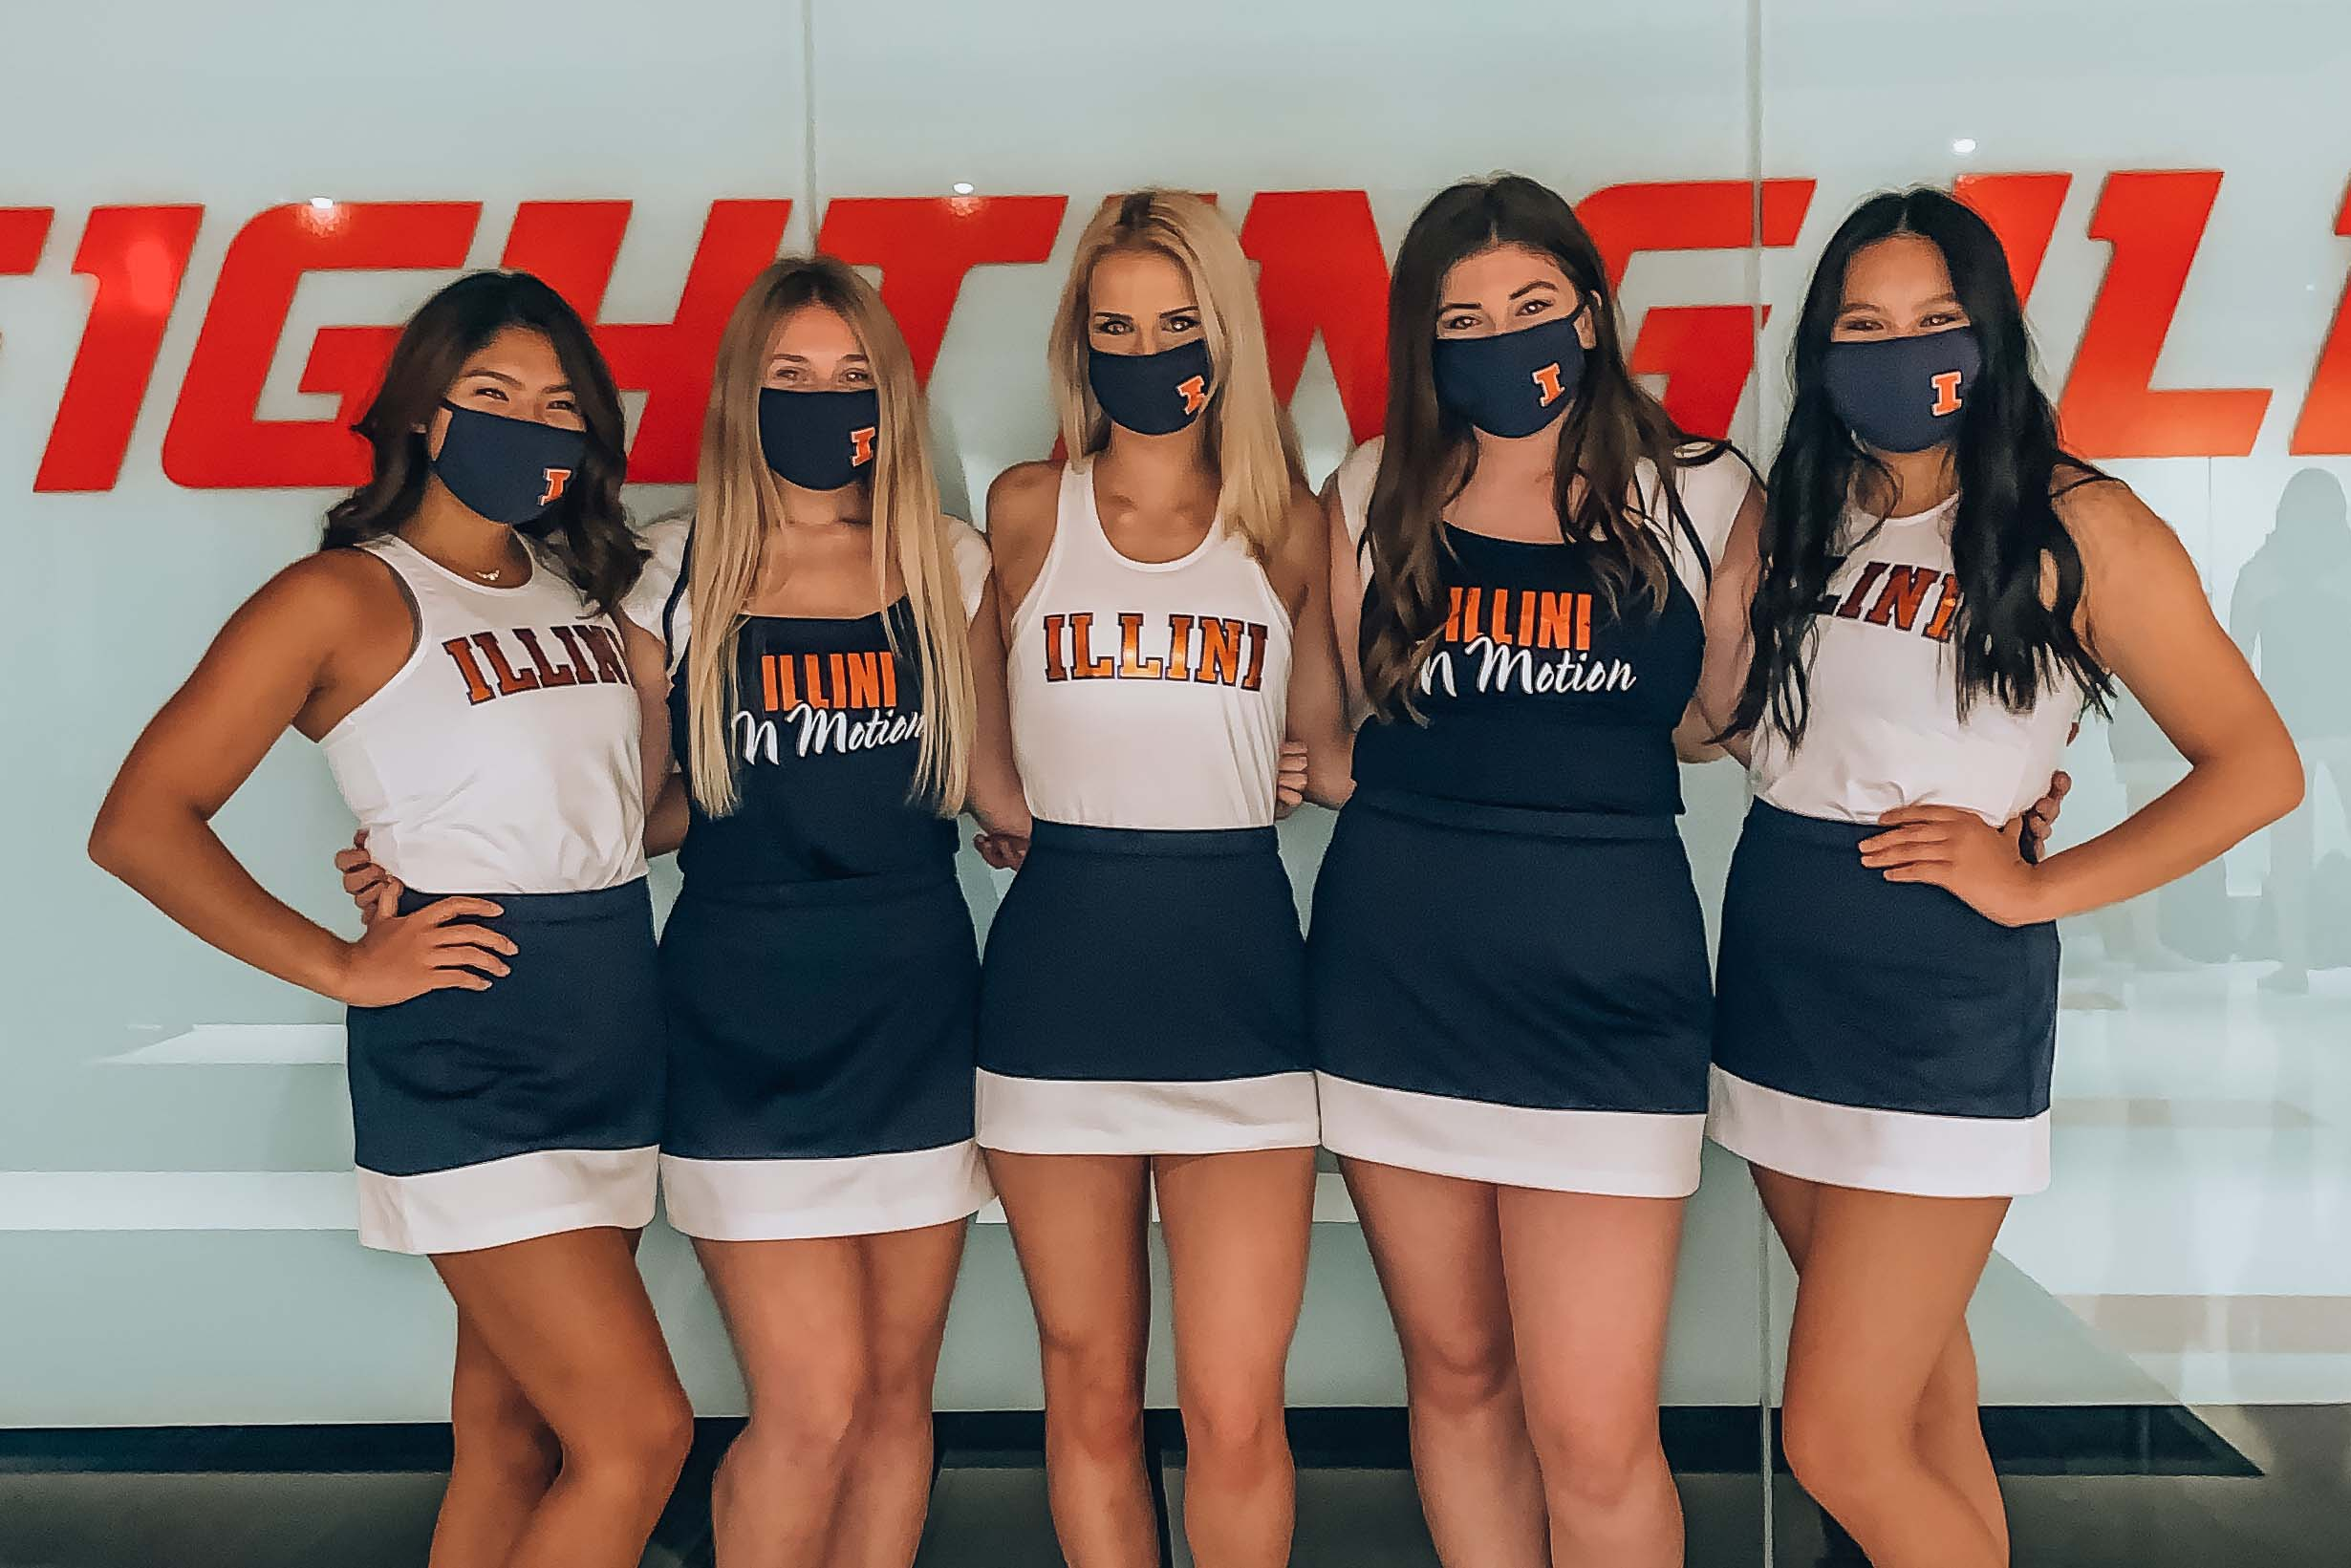 Claire and her dance team wearing face coverings at an event.